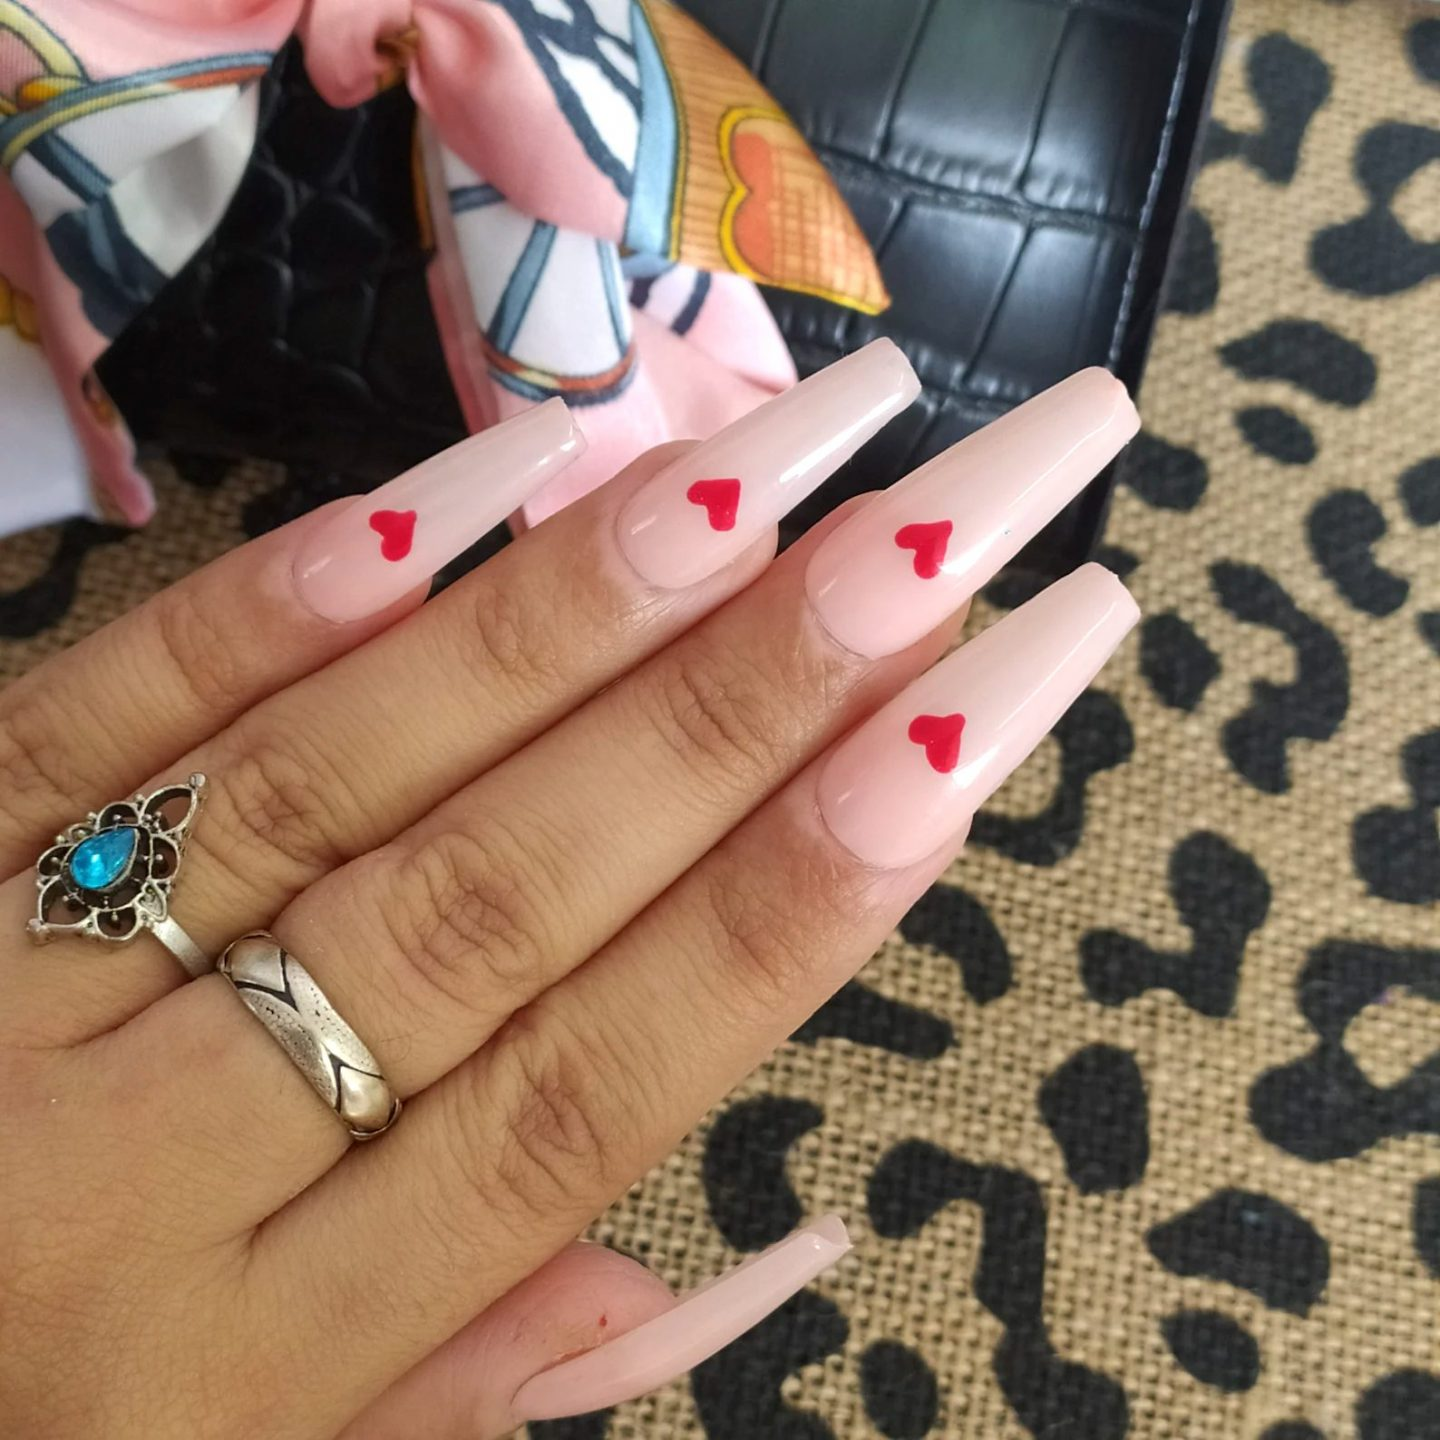 Cute light pink nails with small red hearts